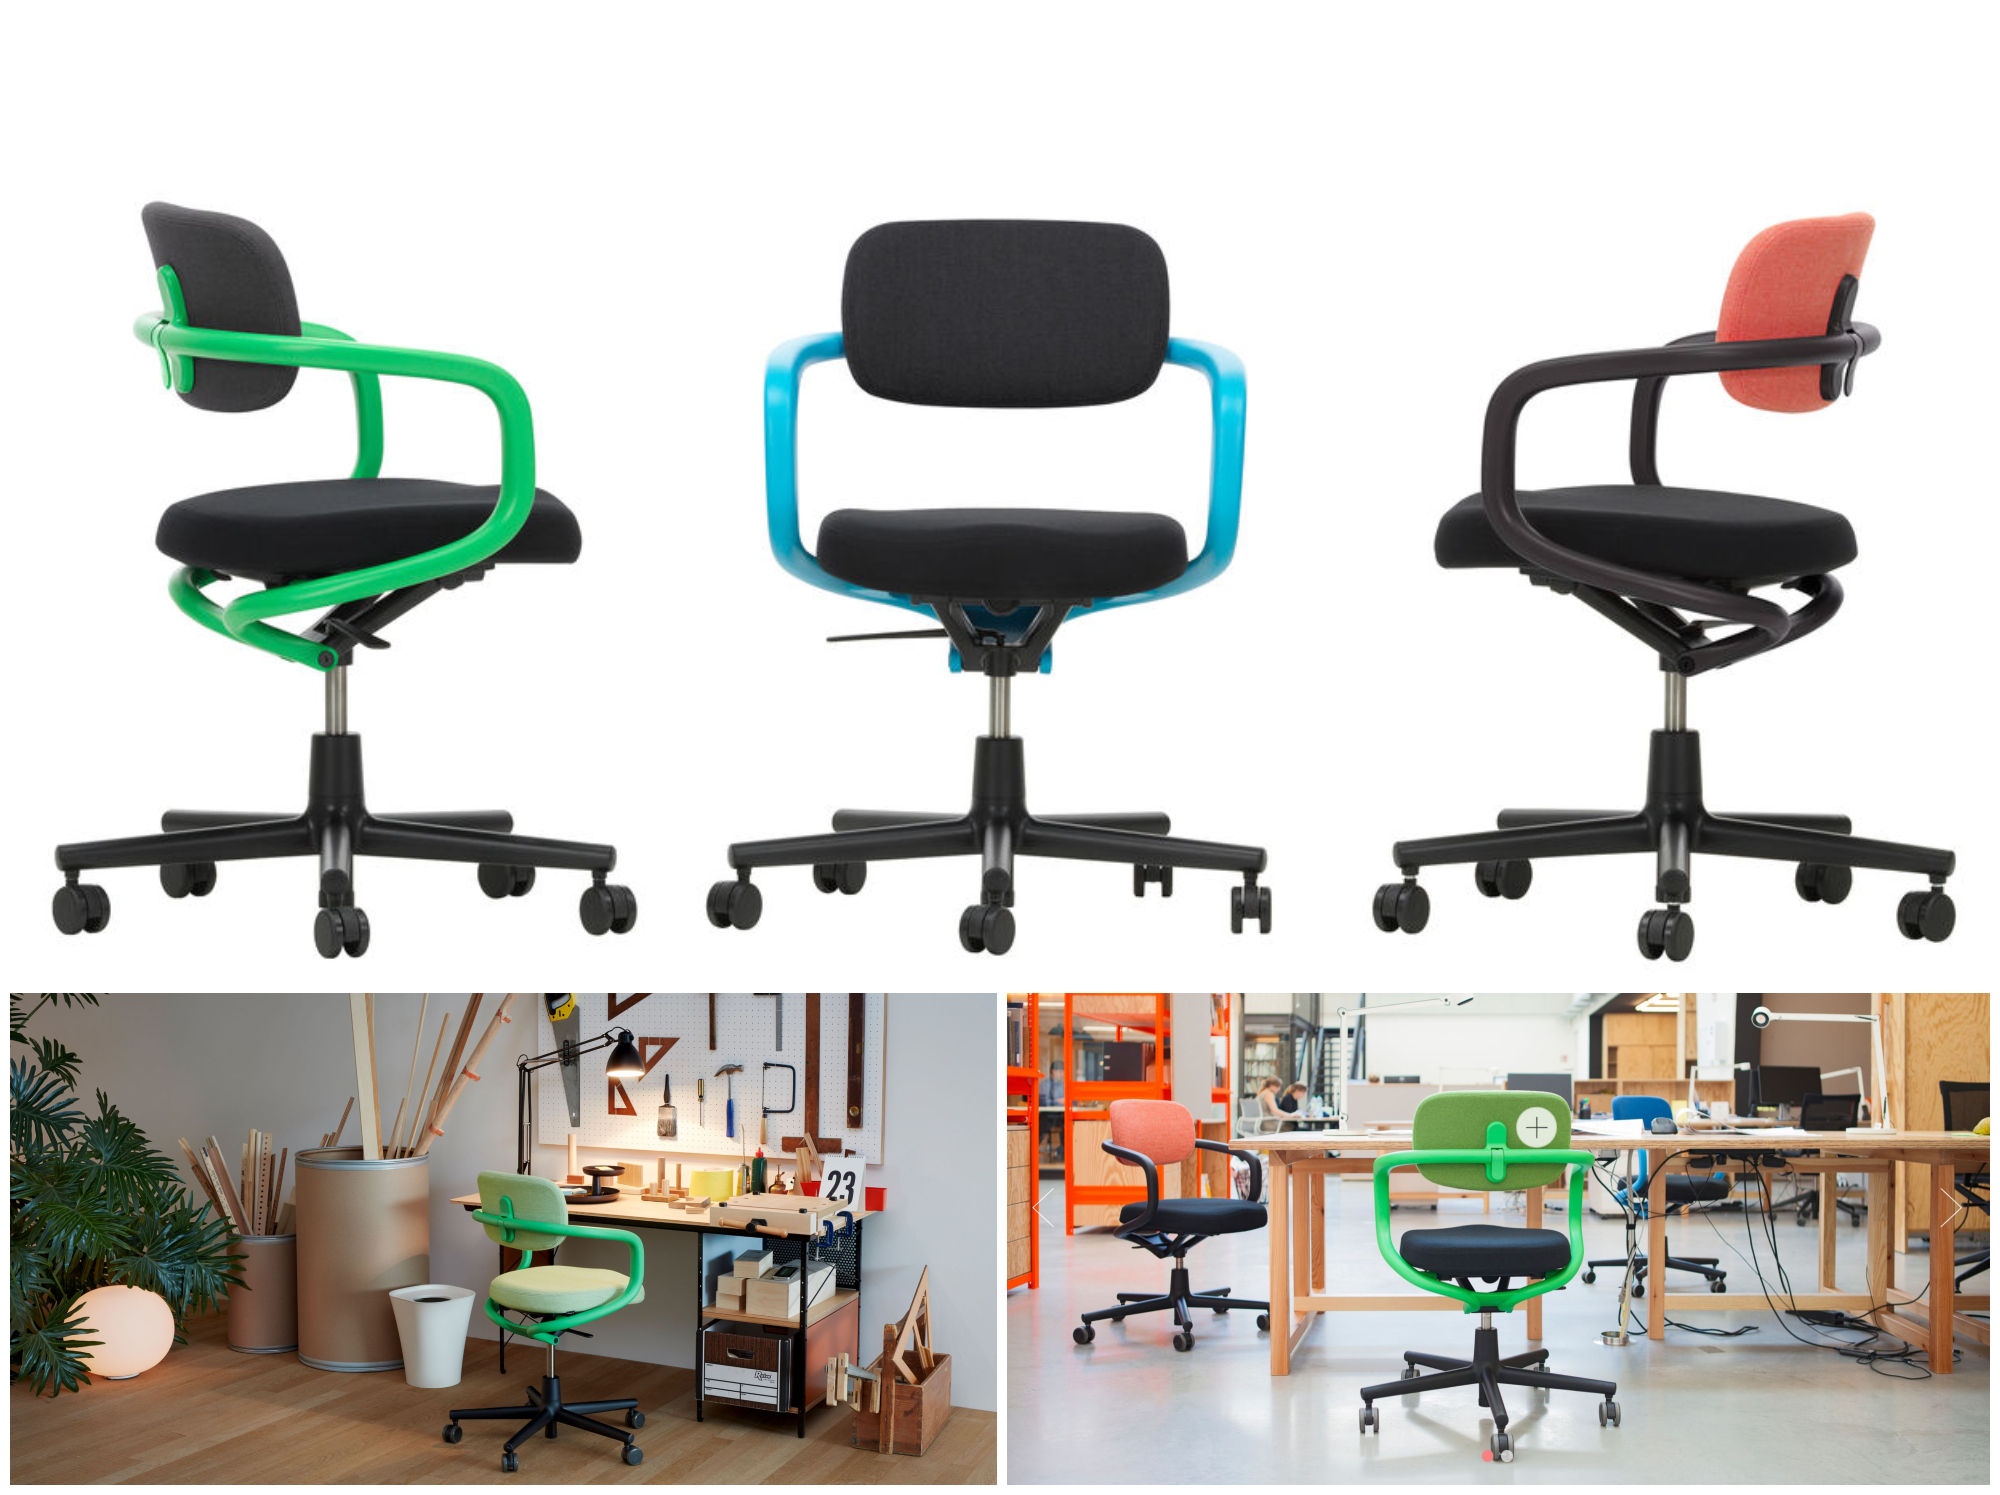 ALLSTAR - KONSTANTIN GRCIC, 2014  THE ALLSTAR OFFICE CHAIR BY KONSTANTIN GRCIC SATISFIES ALL THE NECESSARY FUNCTIONS OF A TASK CHAIR, ALLOWING IT TO BE USED WHEREVER HIGH FUNCTIONAL PERFORMANCE IS DESIRED BUT A CLASSIC OFFICE CHAIR WOULD NOT BE APPROPRIATE FOR AESTHETIC REASONS – AN ESPECIALLY IDEAL CHOICE FOR MODERN WORKPLACE CONCEPTS.